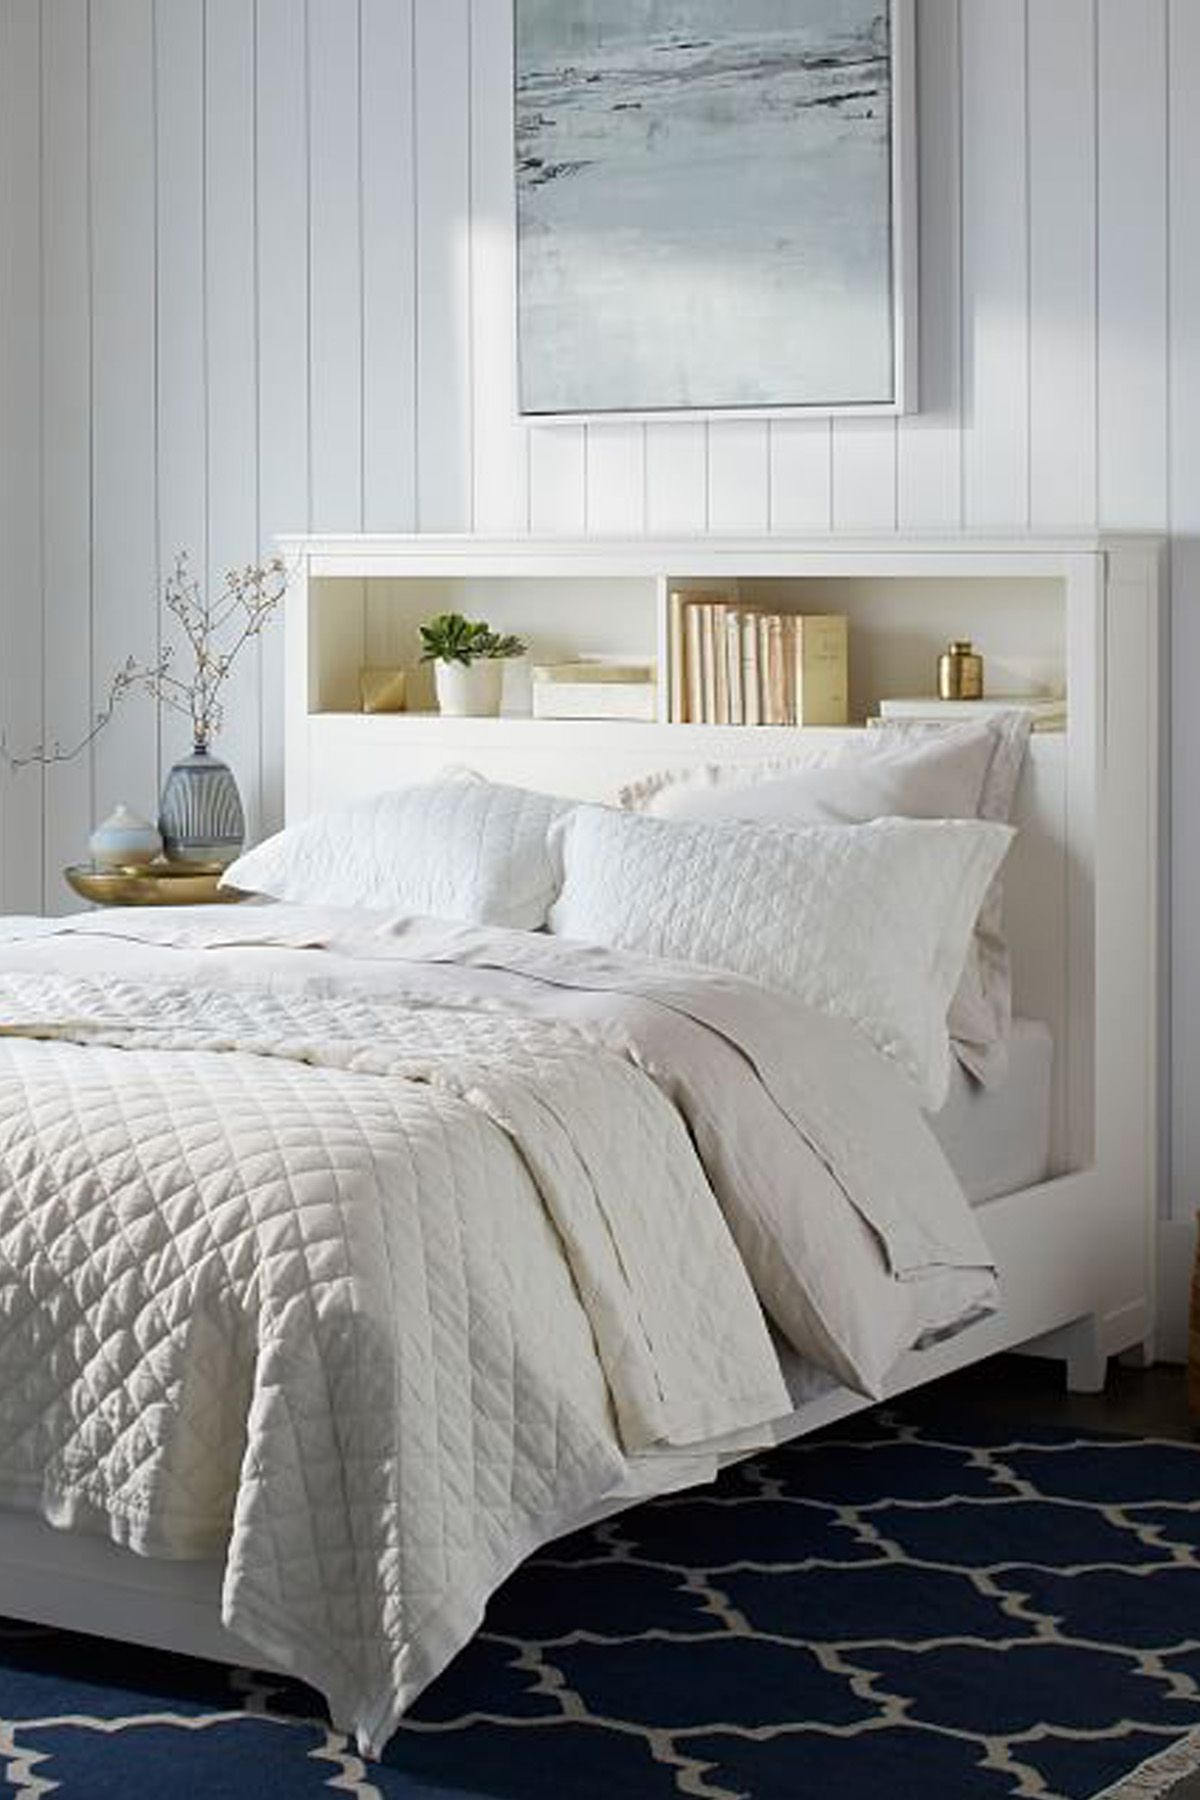 master bedroom headboard ideas 20 best headboard ideas unique designs for bed headboards 16075